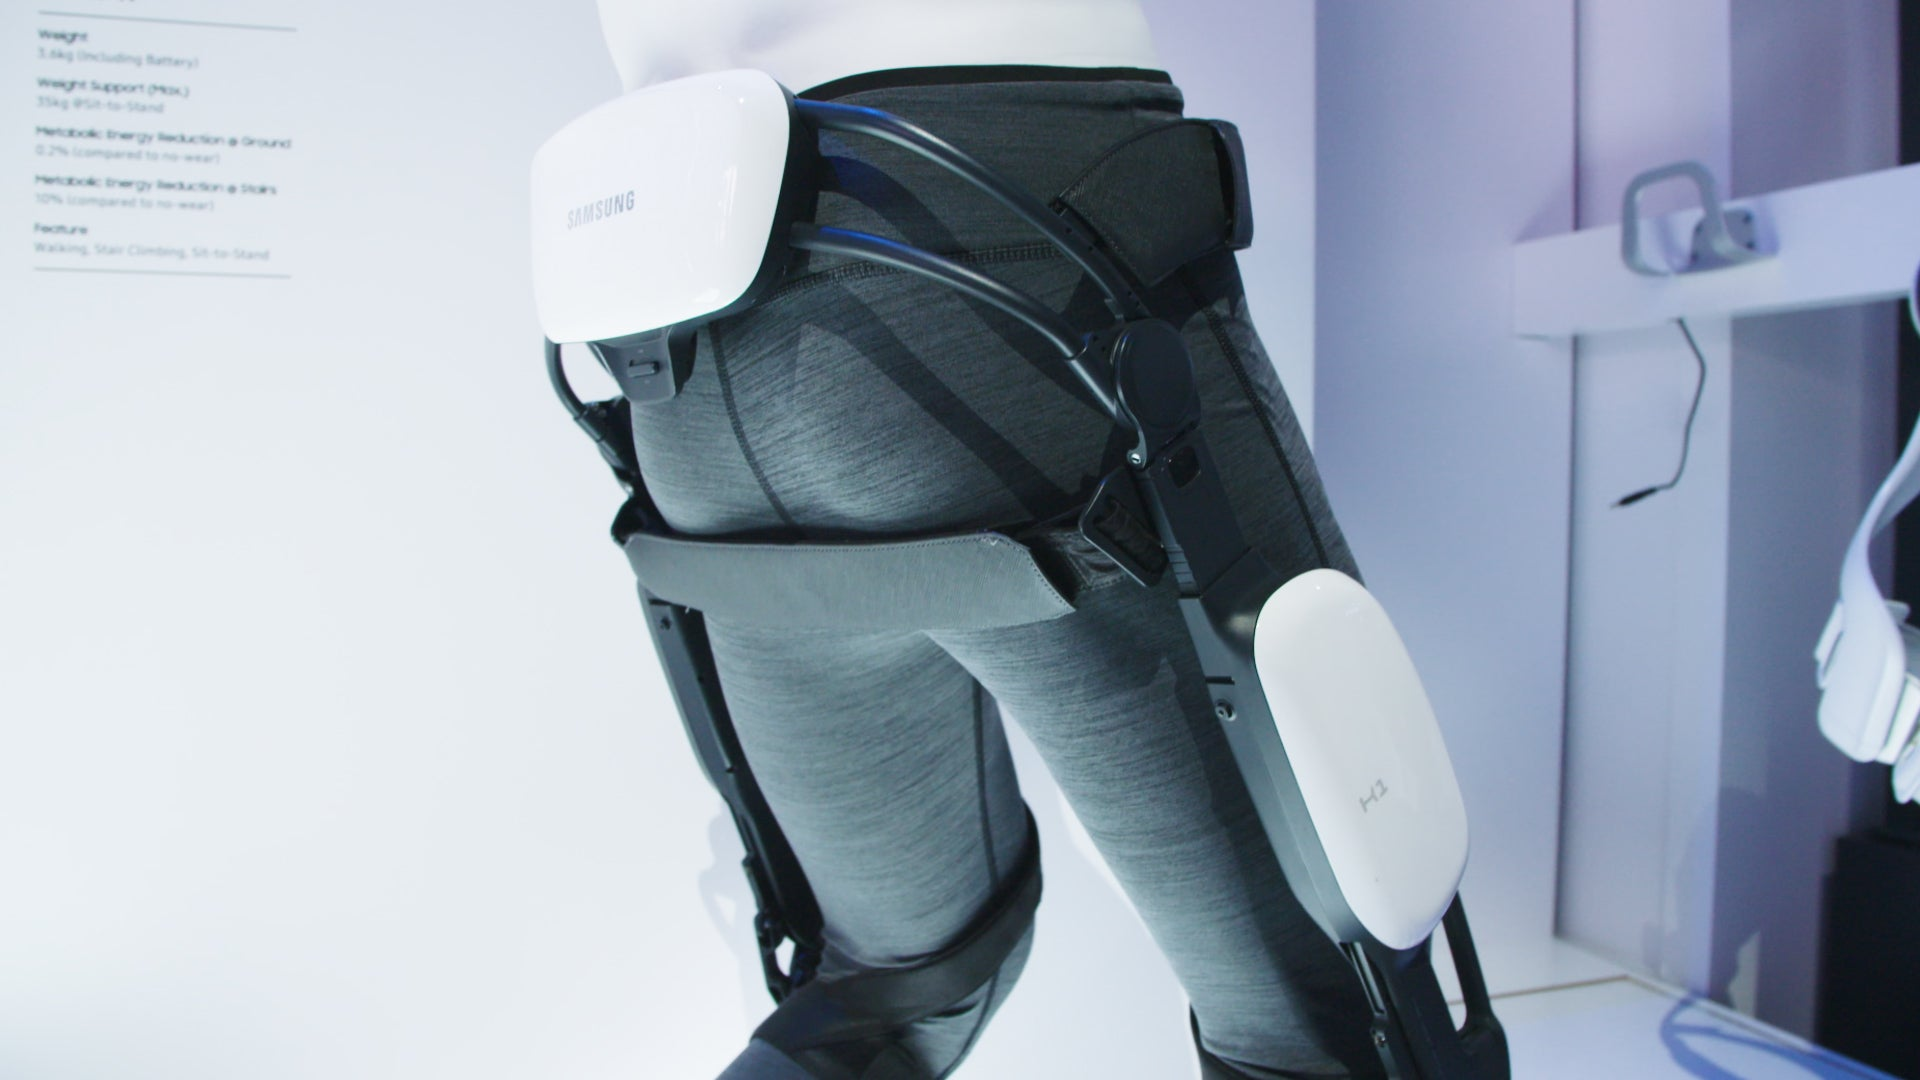 Samsung Let Me Wear An Exoskeleton, And I Liked It